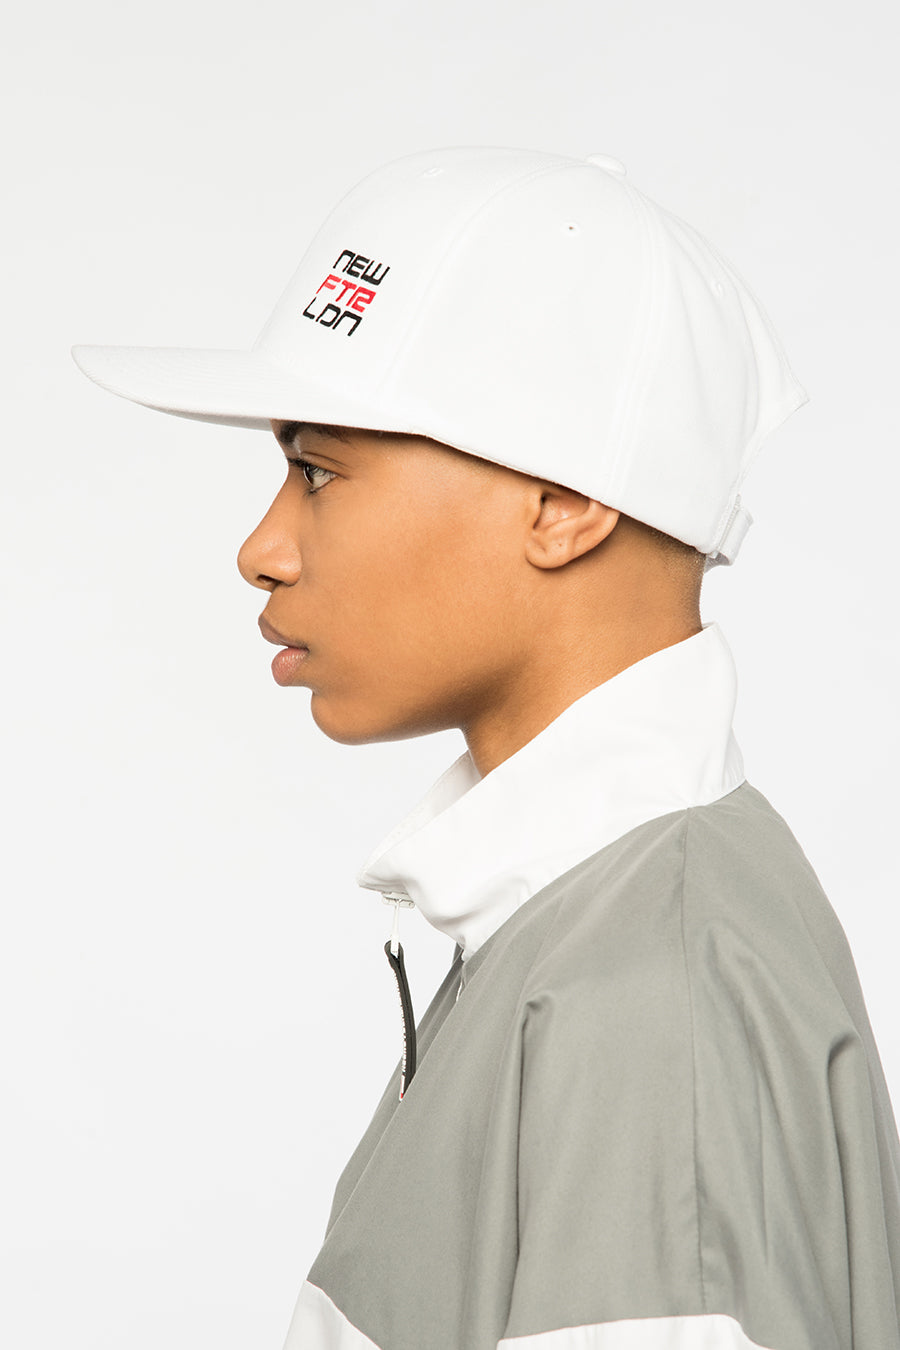 new_future_london_racer_cap_wht_2_1-1.jpg